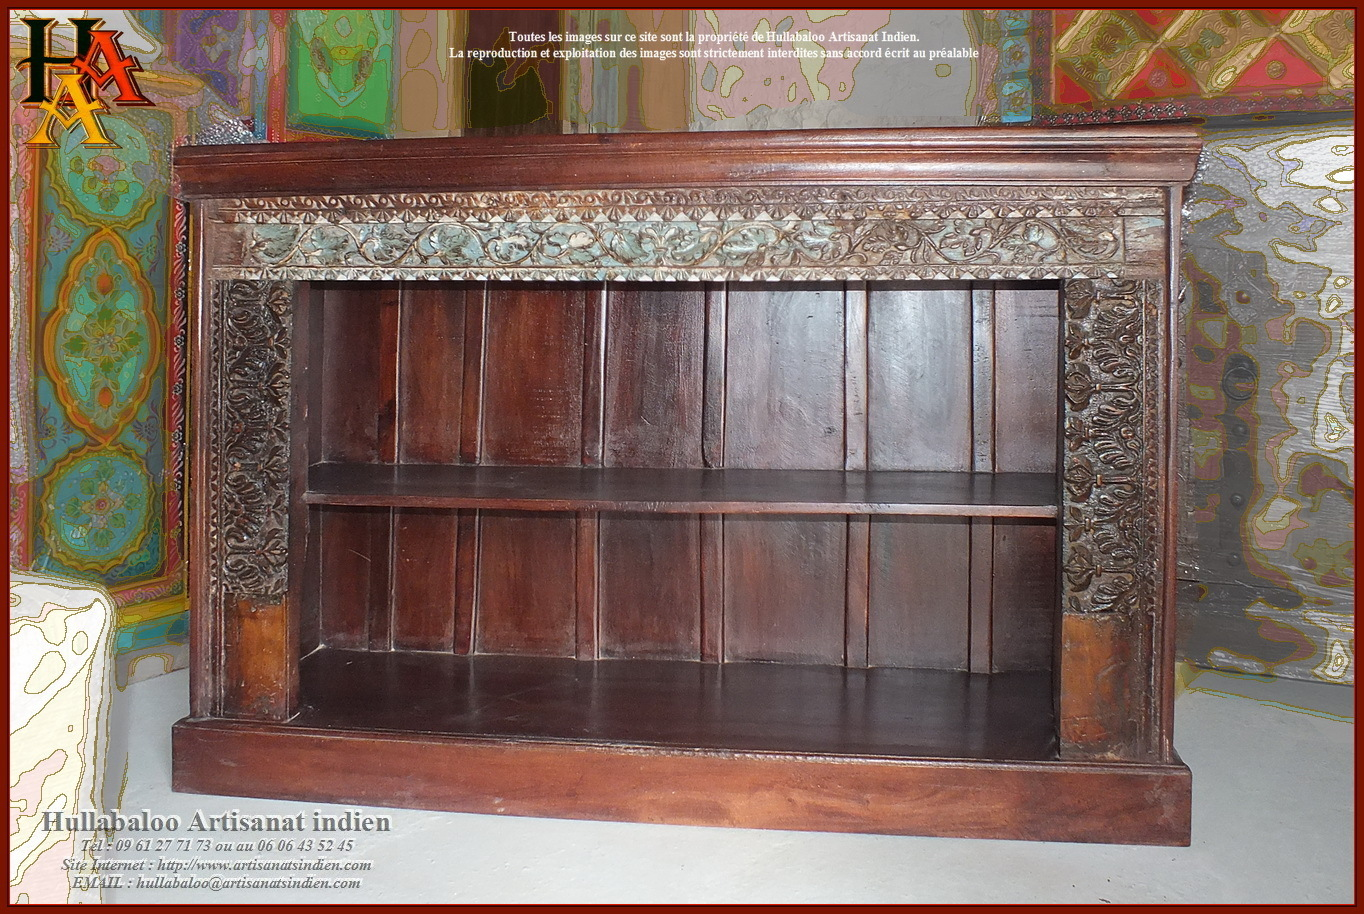 biblioth que indienne jn9 ca26 meubles indiens artisanat indien. Black Bedroom Furniture Sets. Home Design Ideas